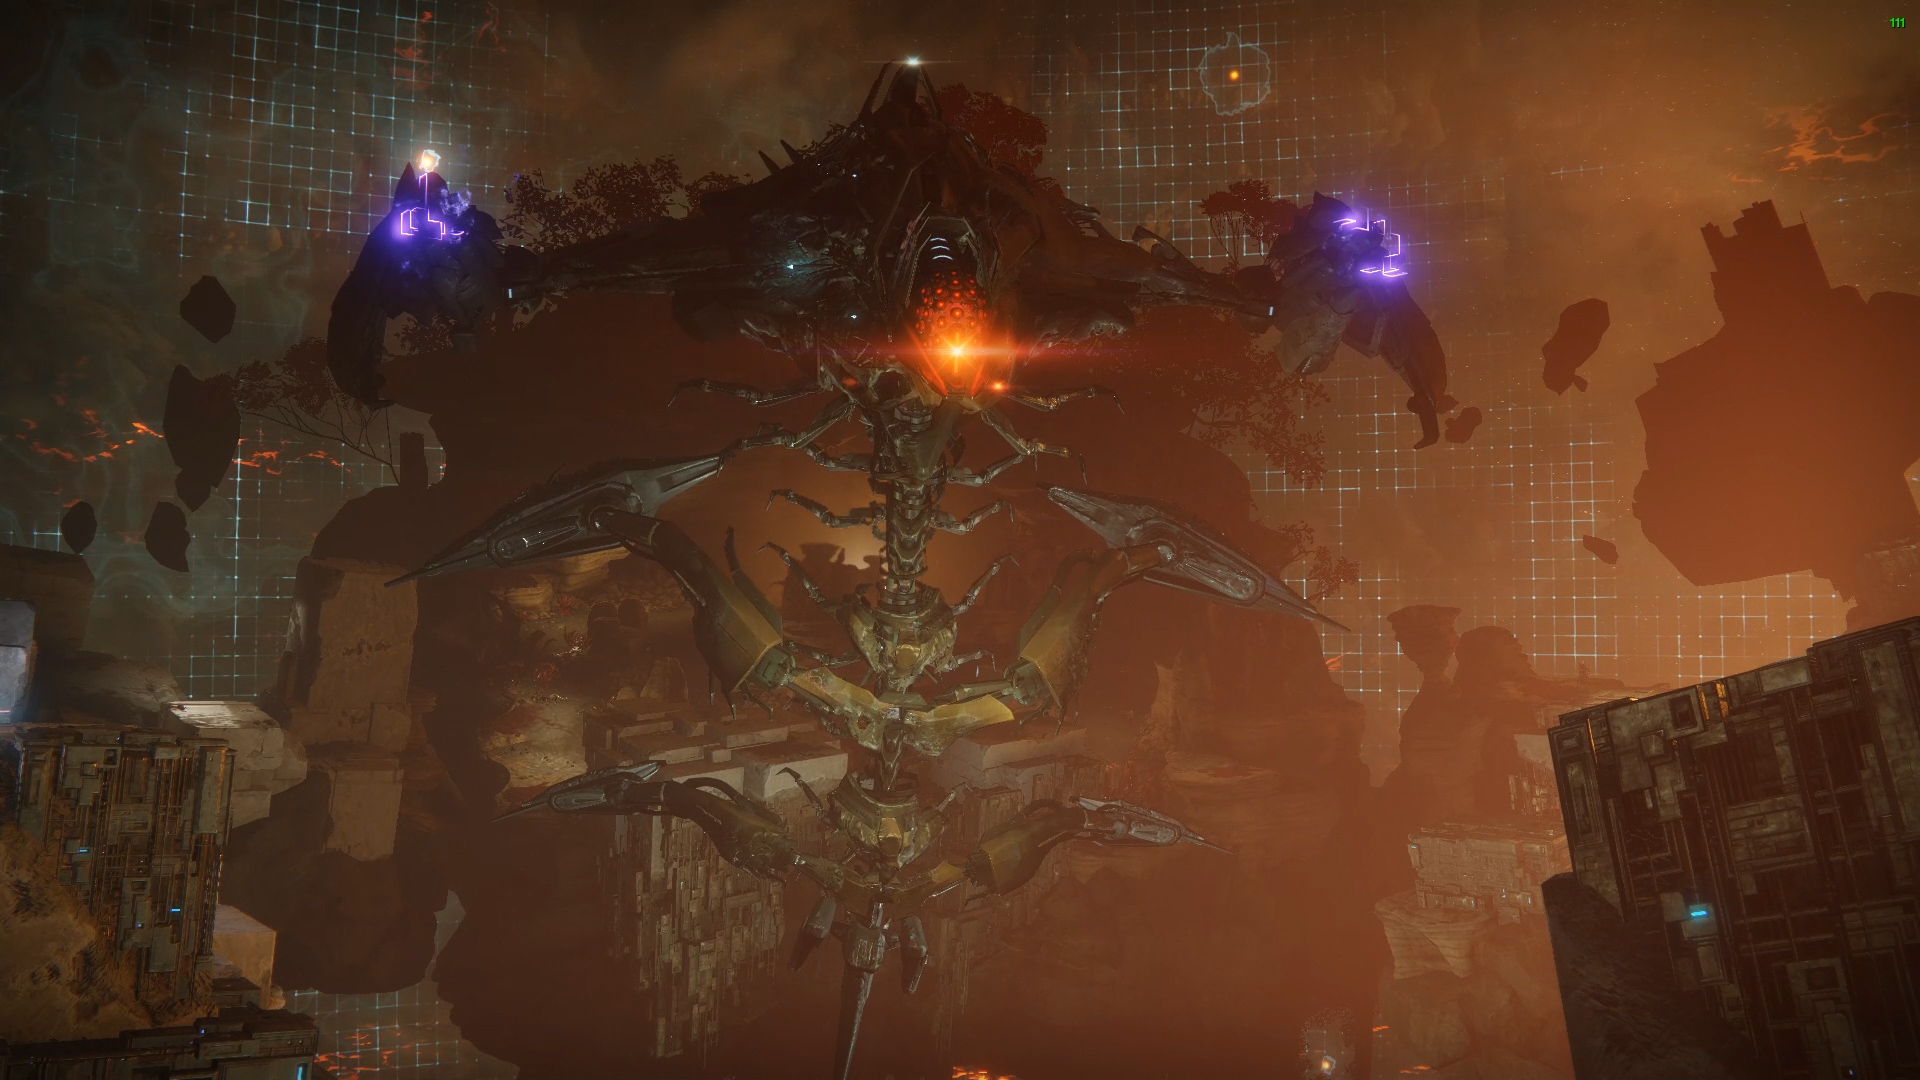 Destiny 2 eater of worlds raid lair complete guide shacknews and allowing you to damage argos this fight uses similar mechanics to the previous encounter specifically the charging fires and the vex craniums gumiabroncs Choice Image